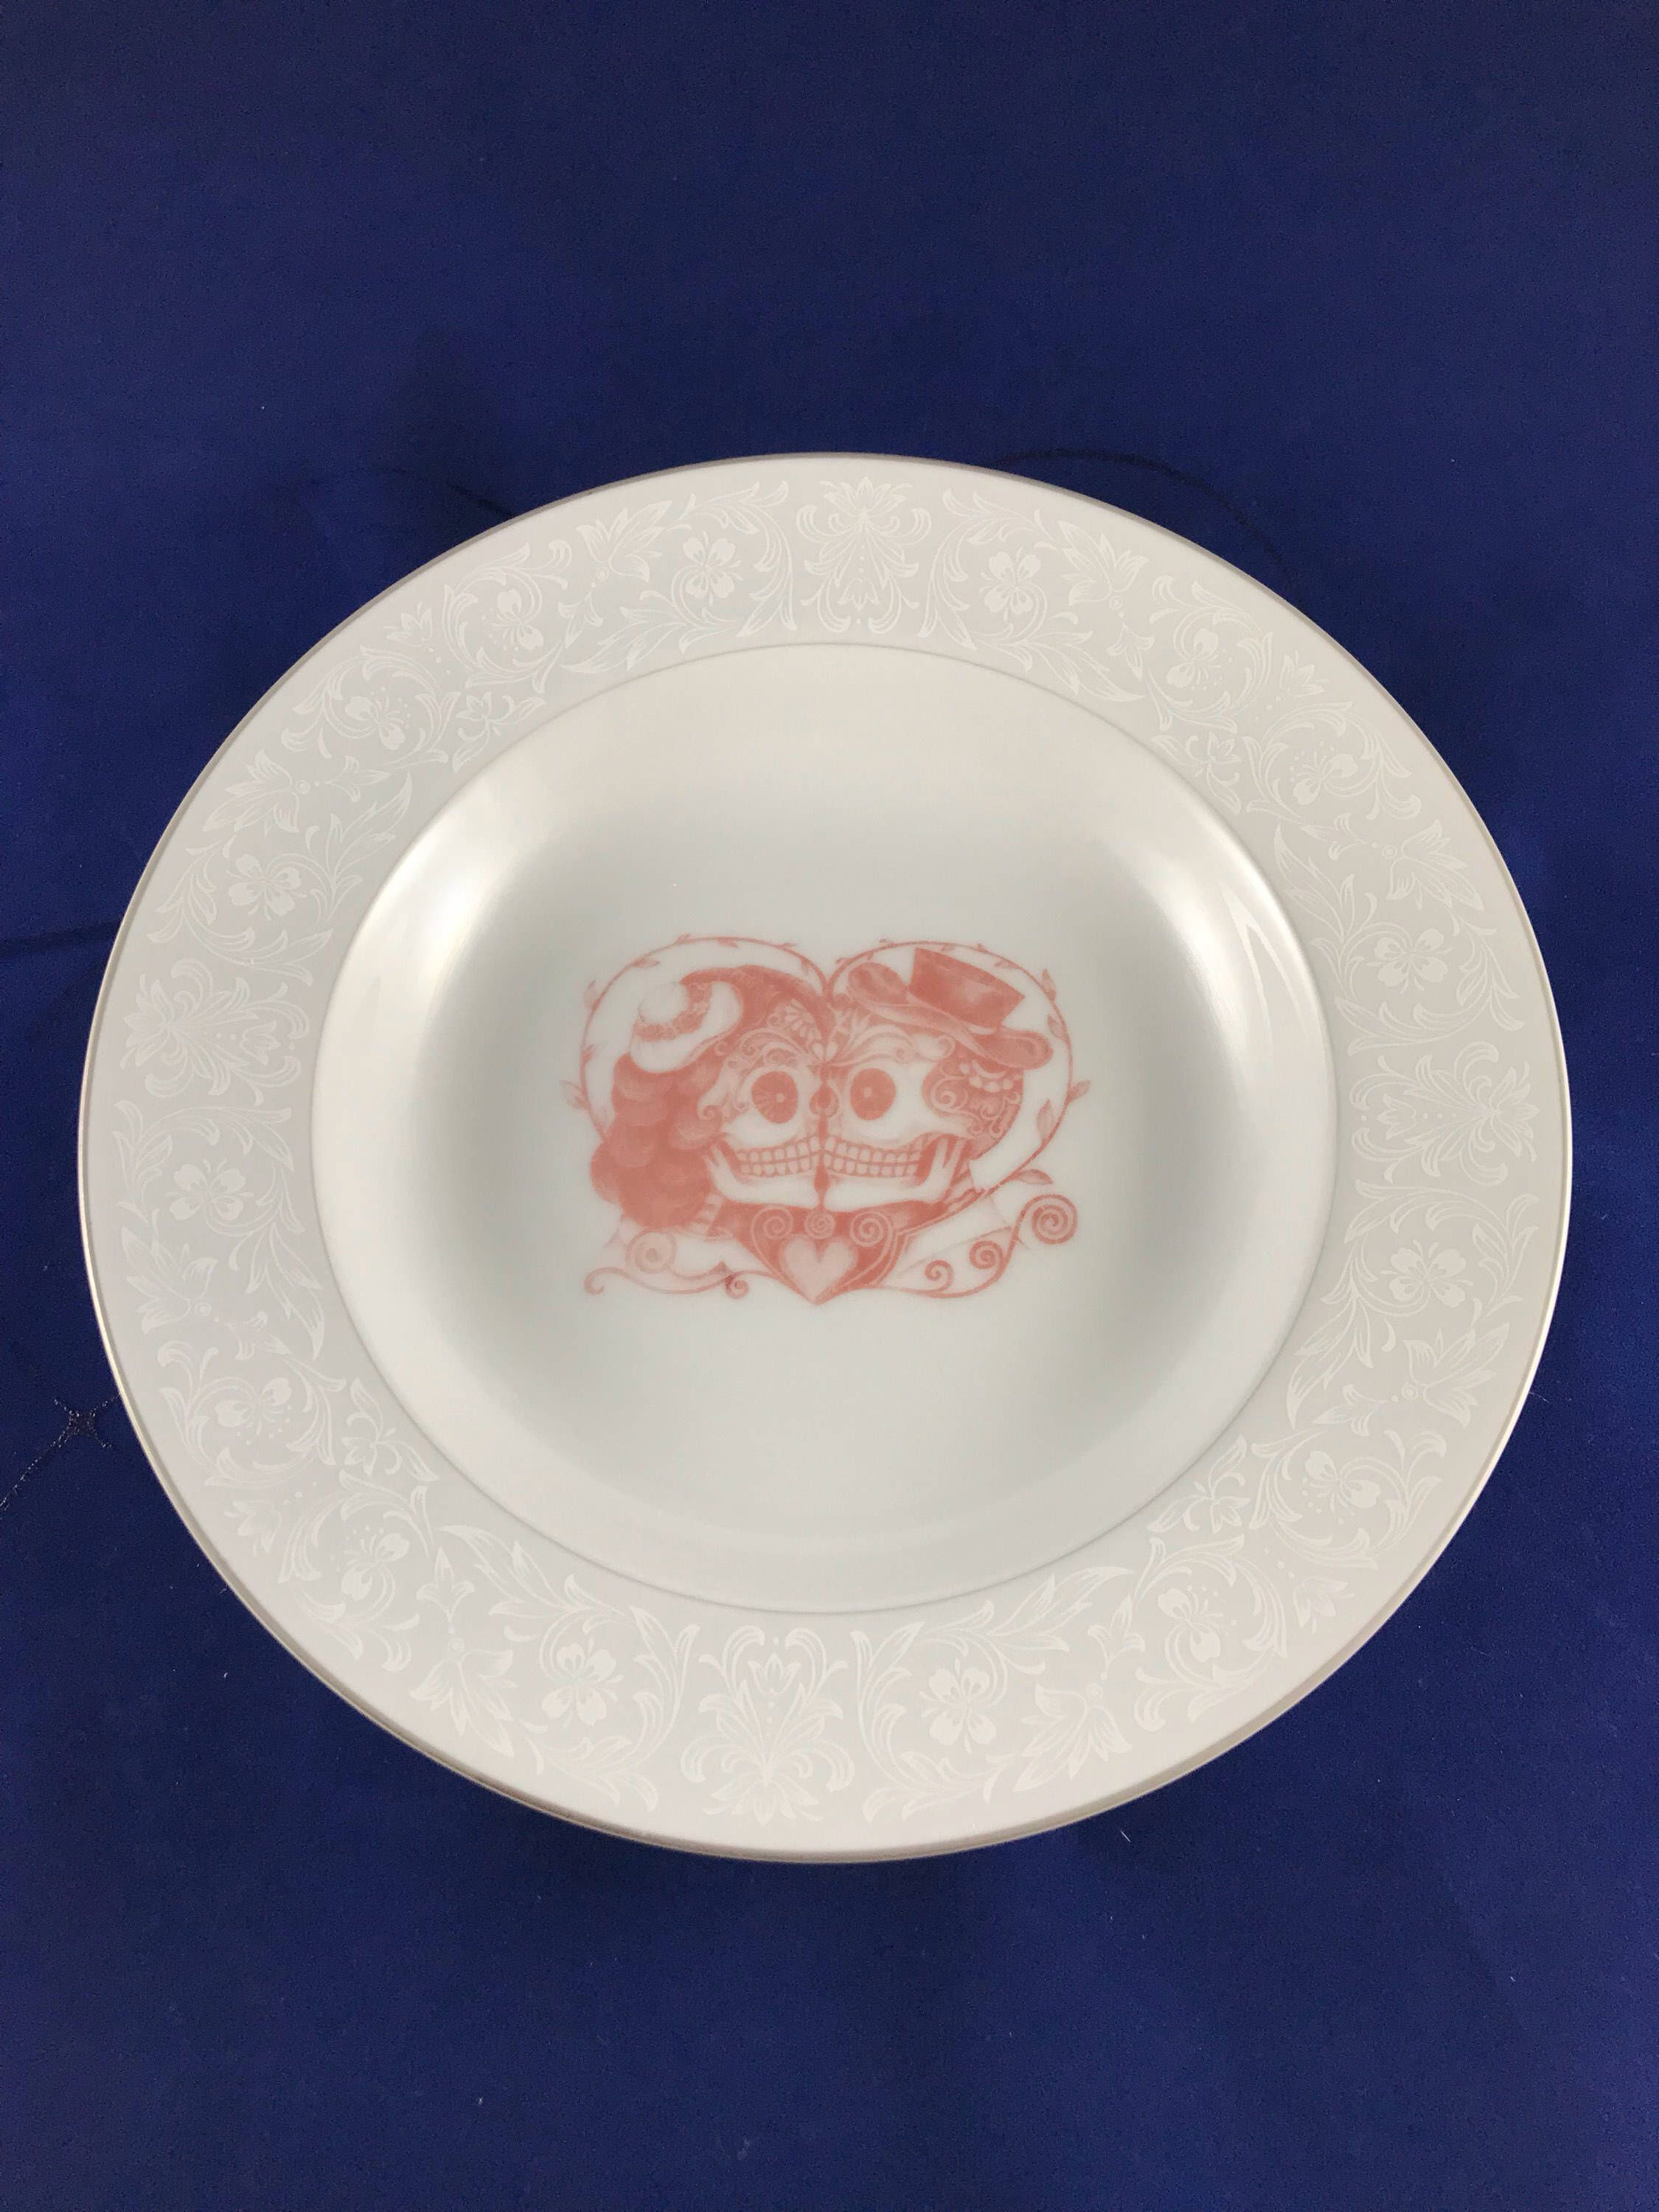 Sugar skull, couple, dinner plates, bowl, gothic gifts, house ...